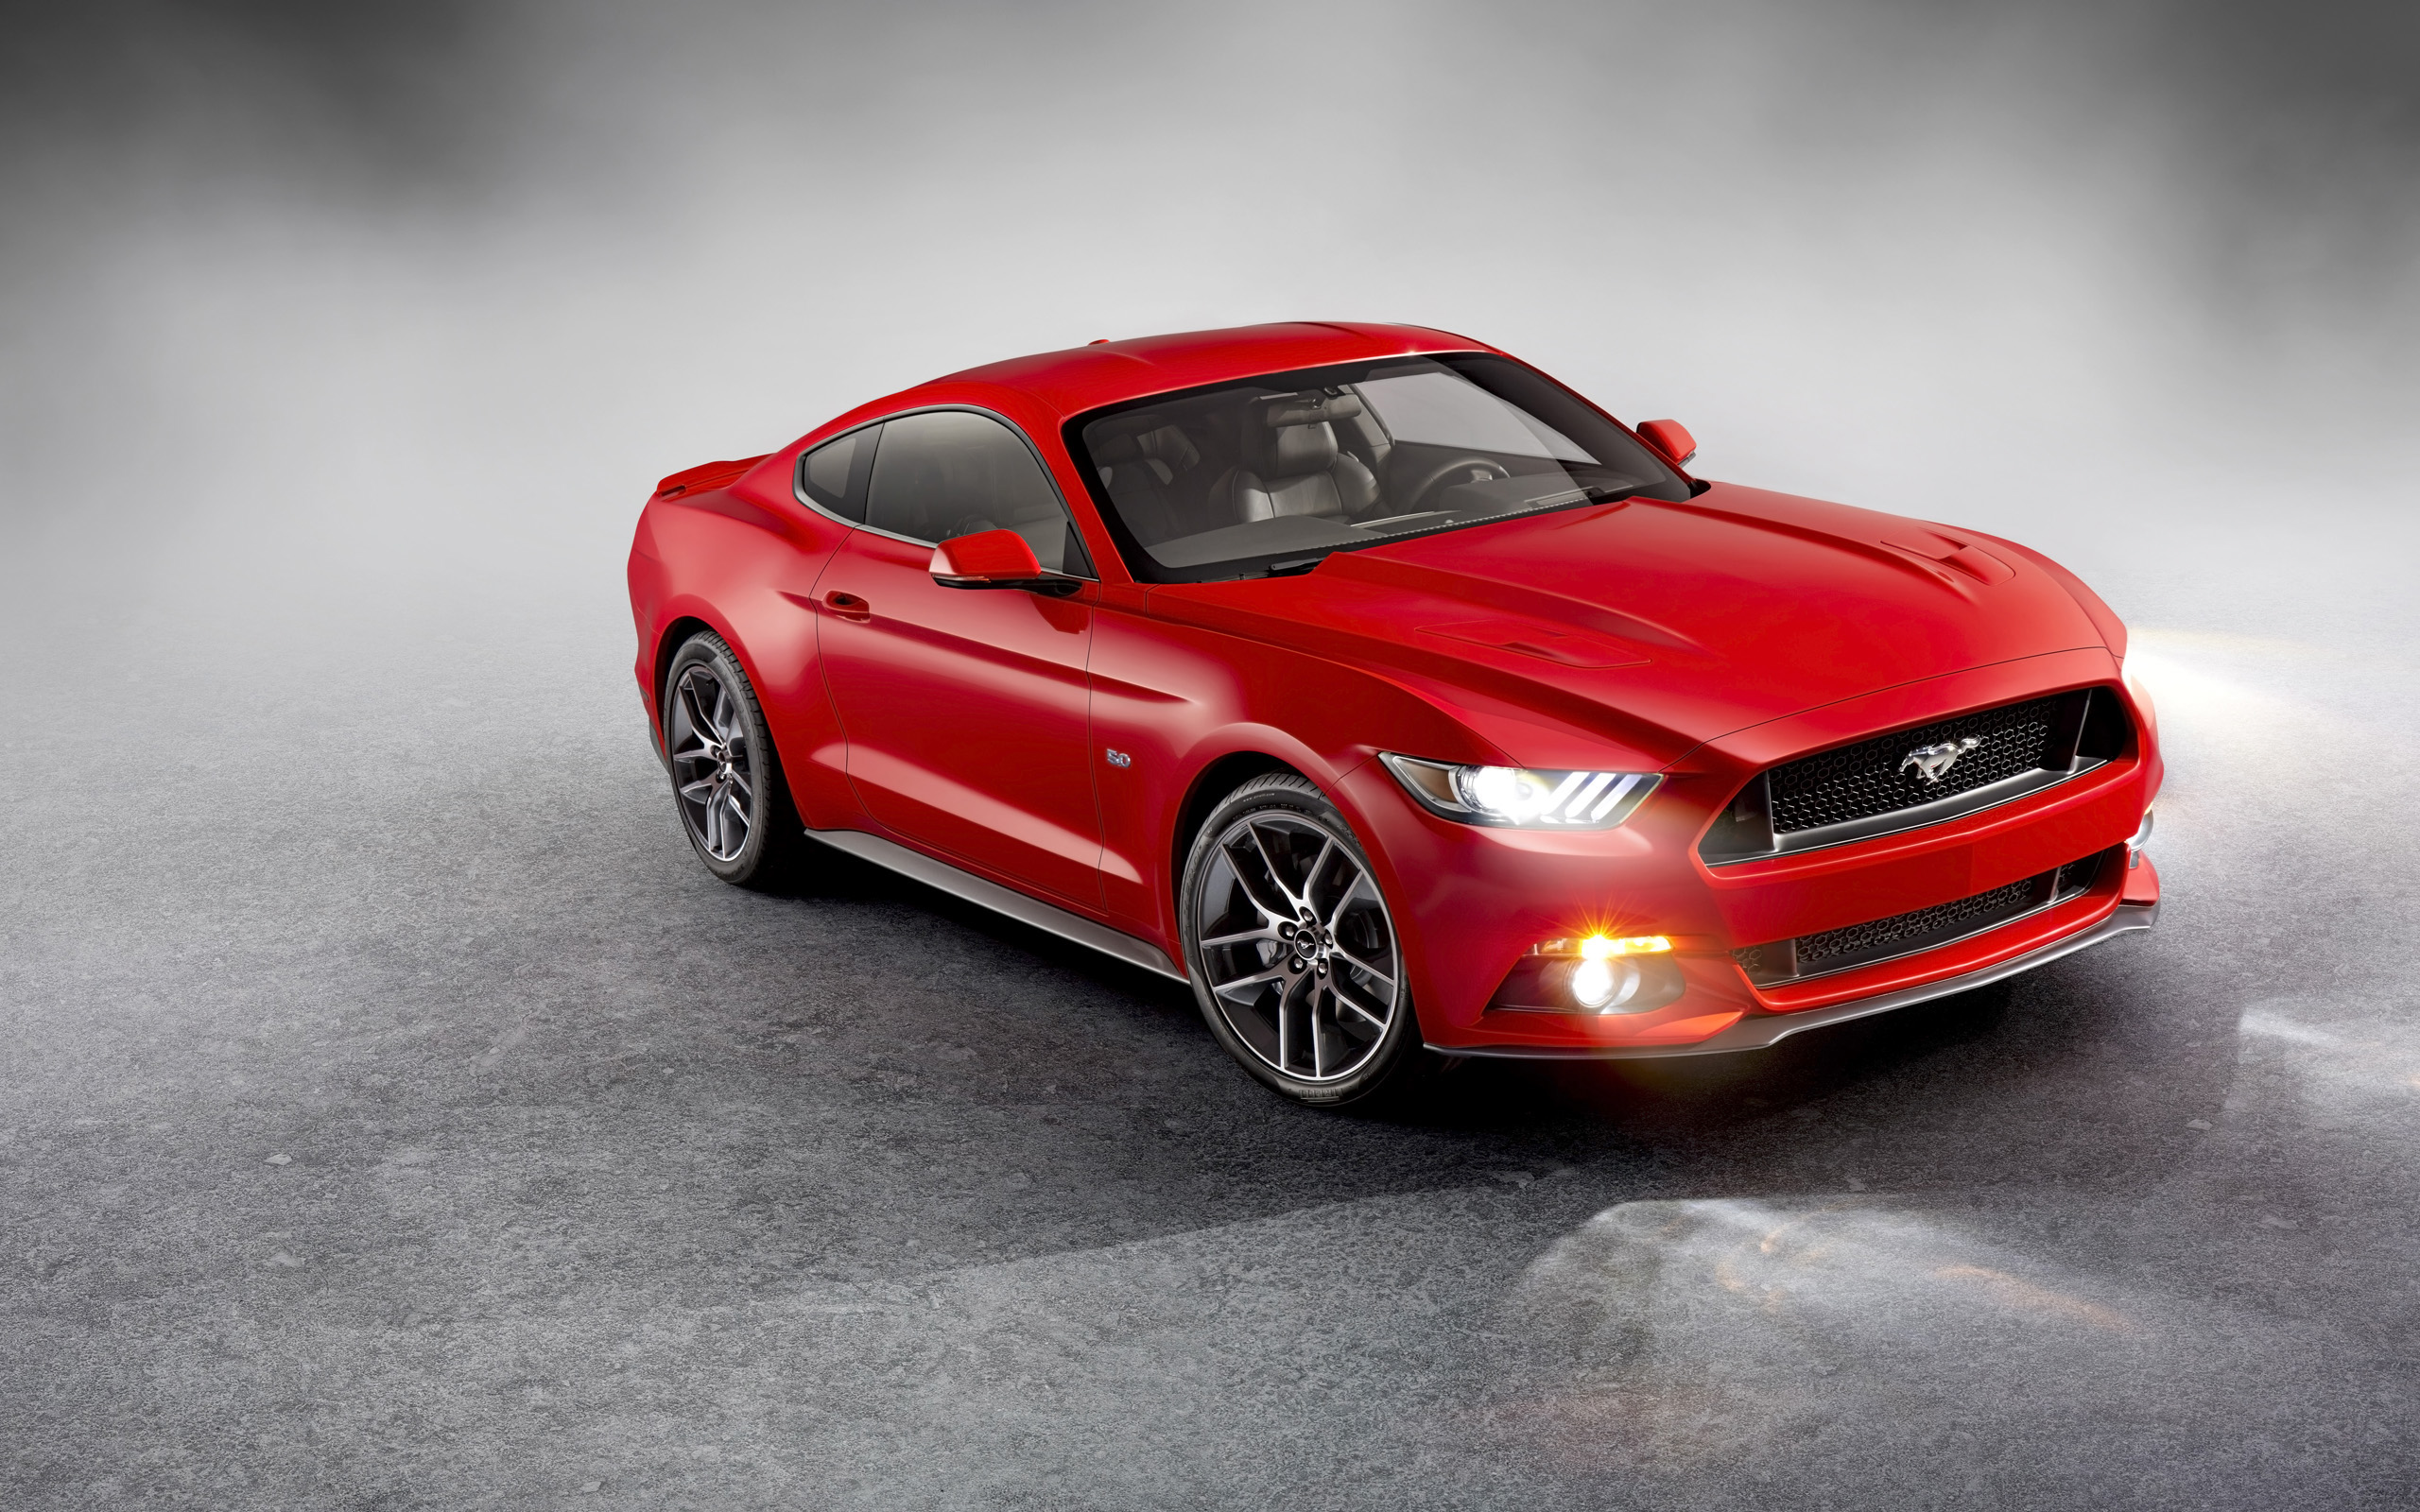 Ford Mustang 2016 Wallpapers HD High Definition Wallpaper 2560x1600